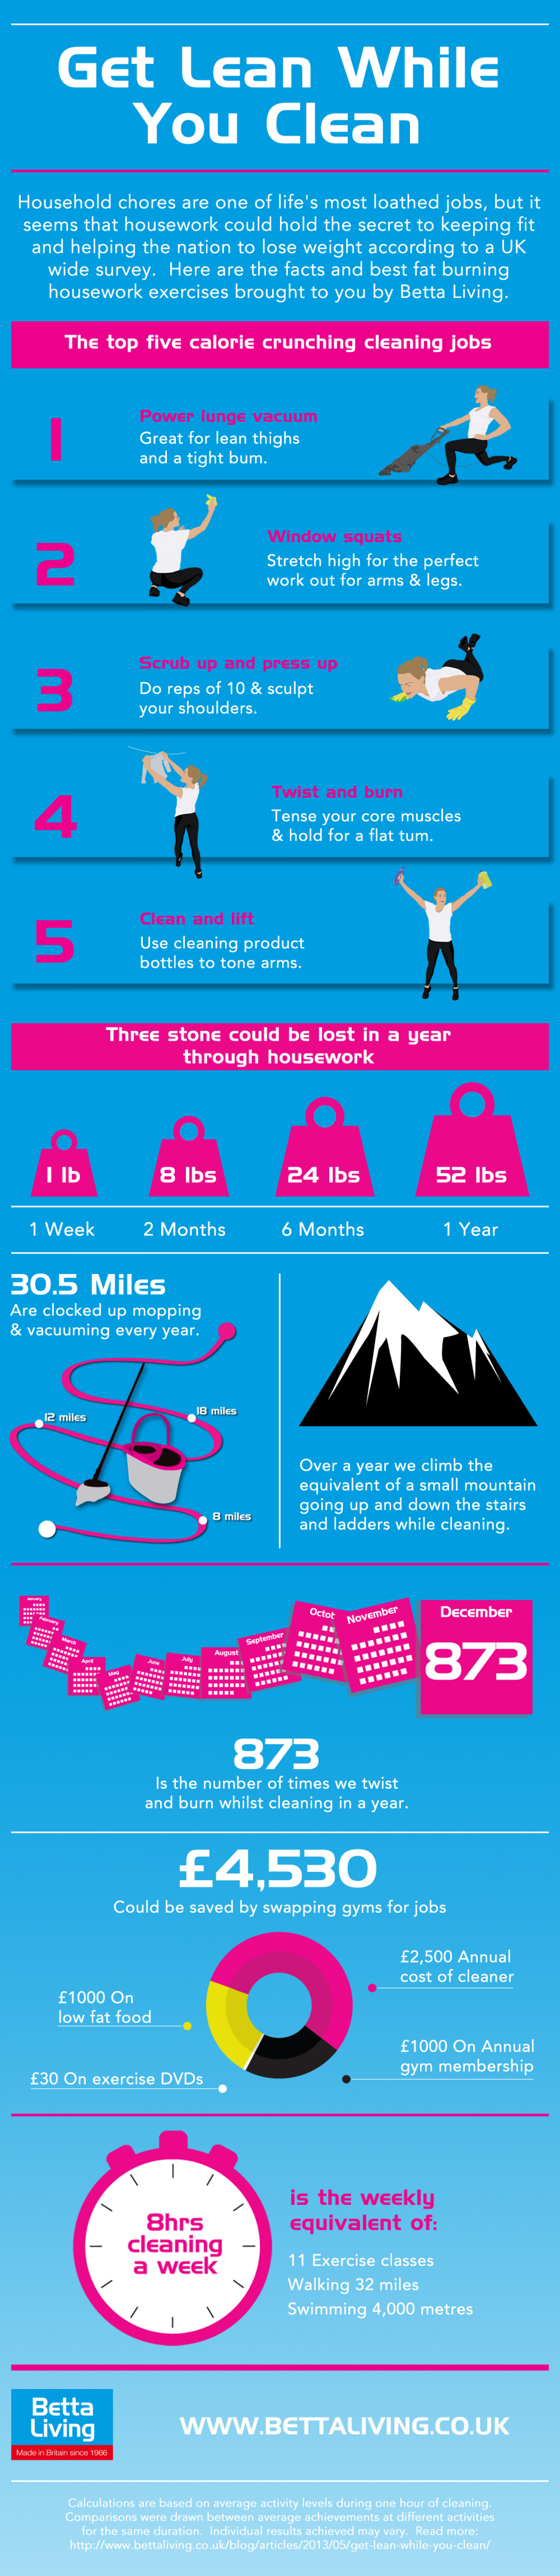 Get Lean While You Clean Infographic